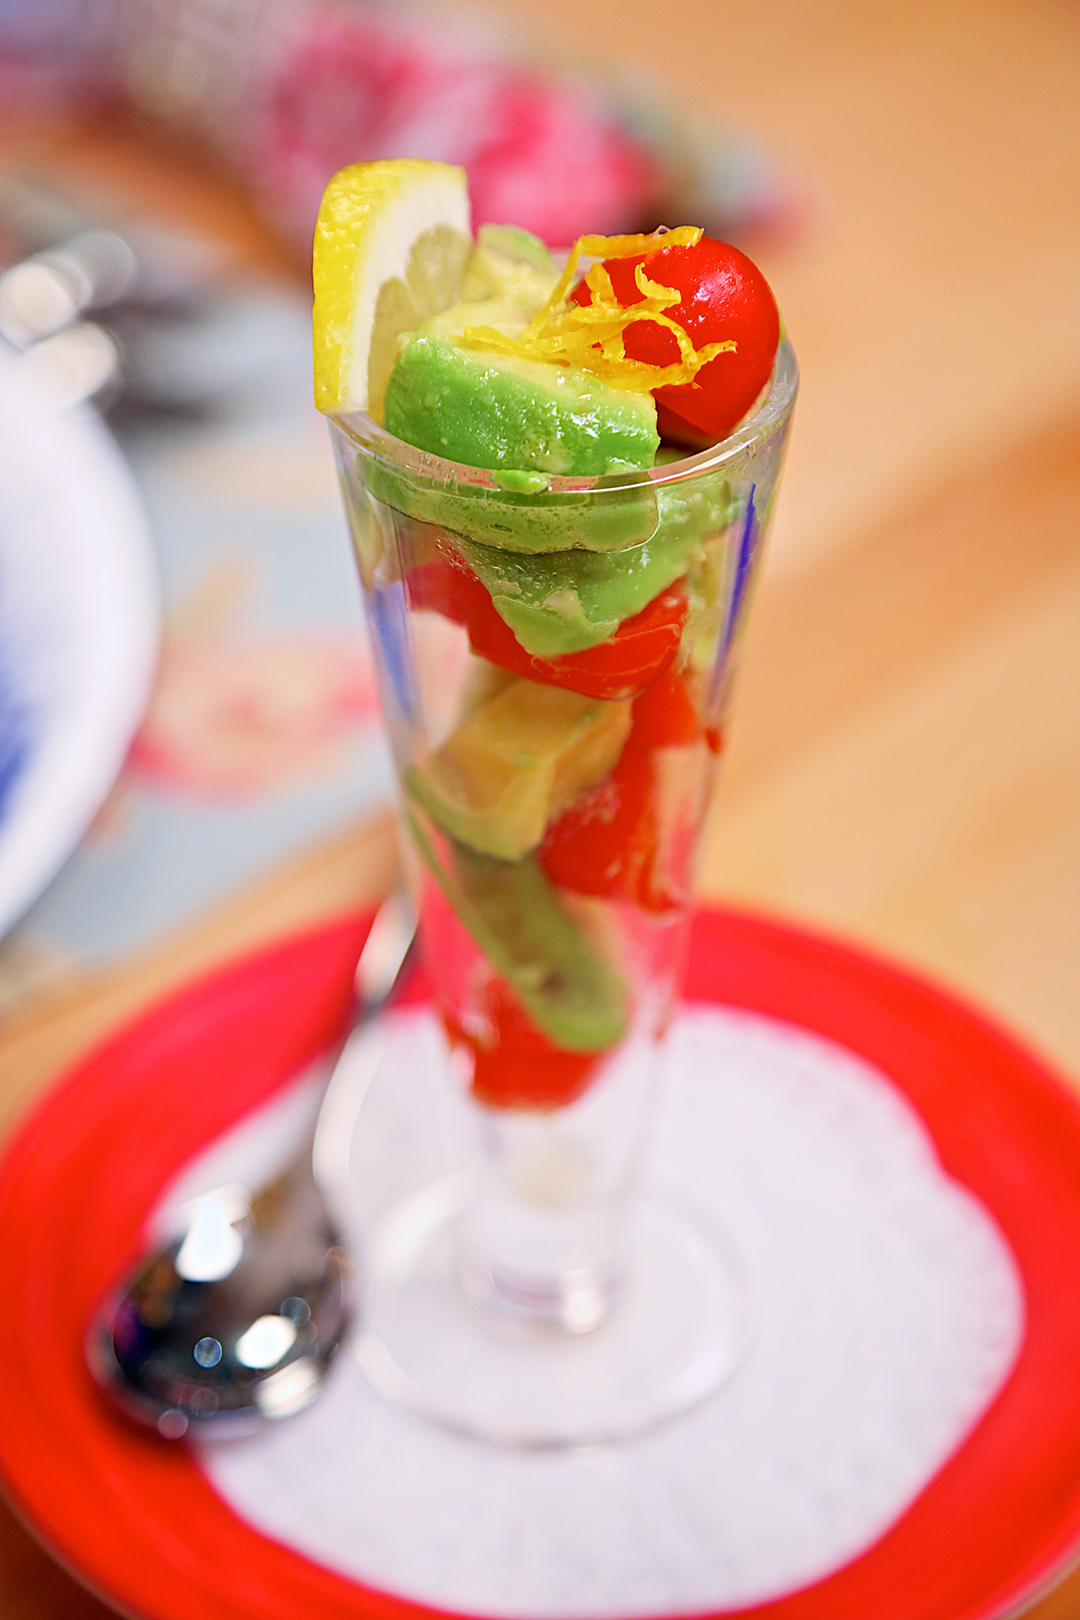 Vegan Recipe - Avocado Salad Parfait